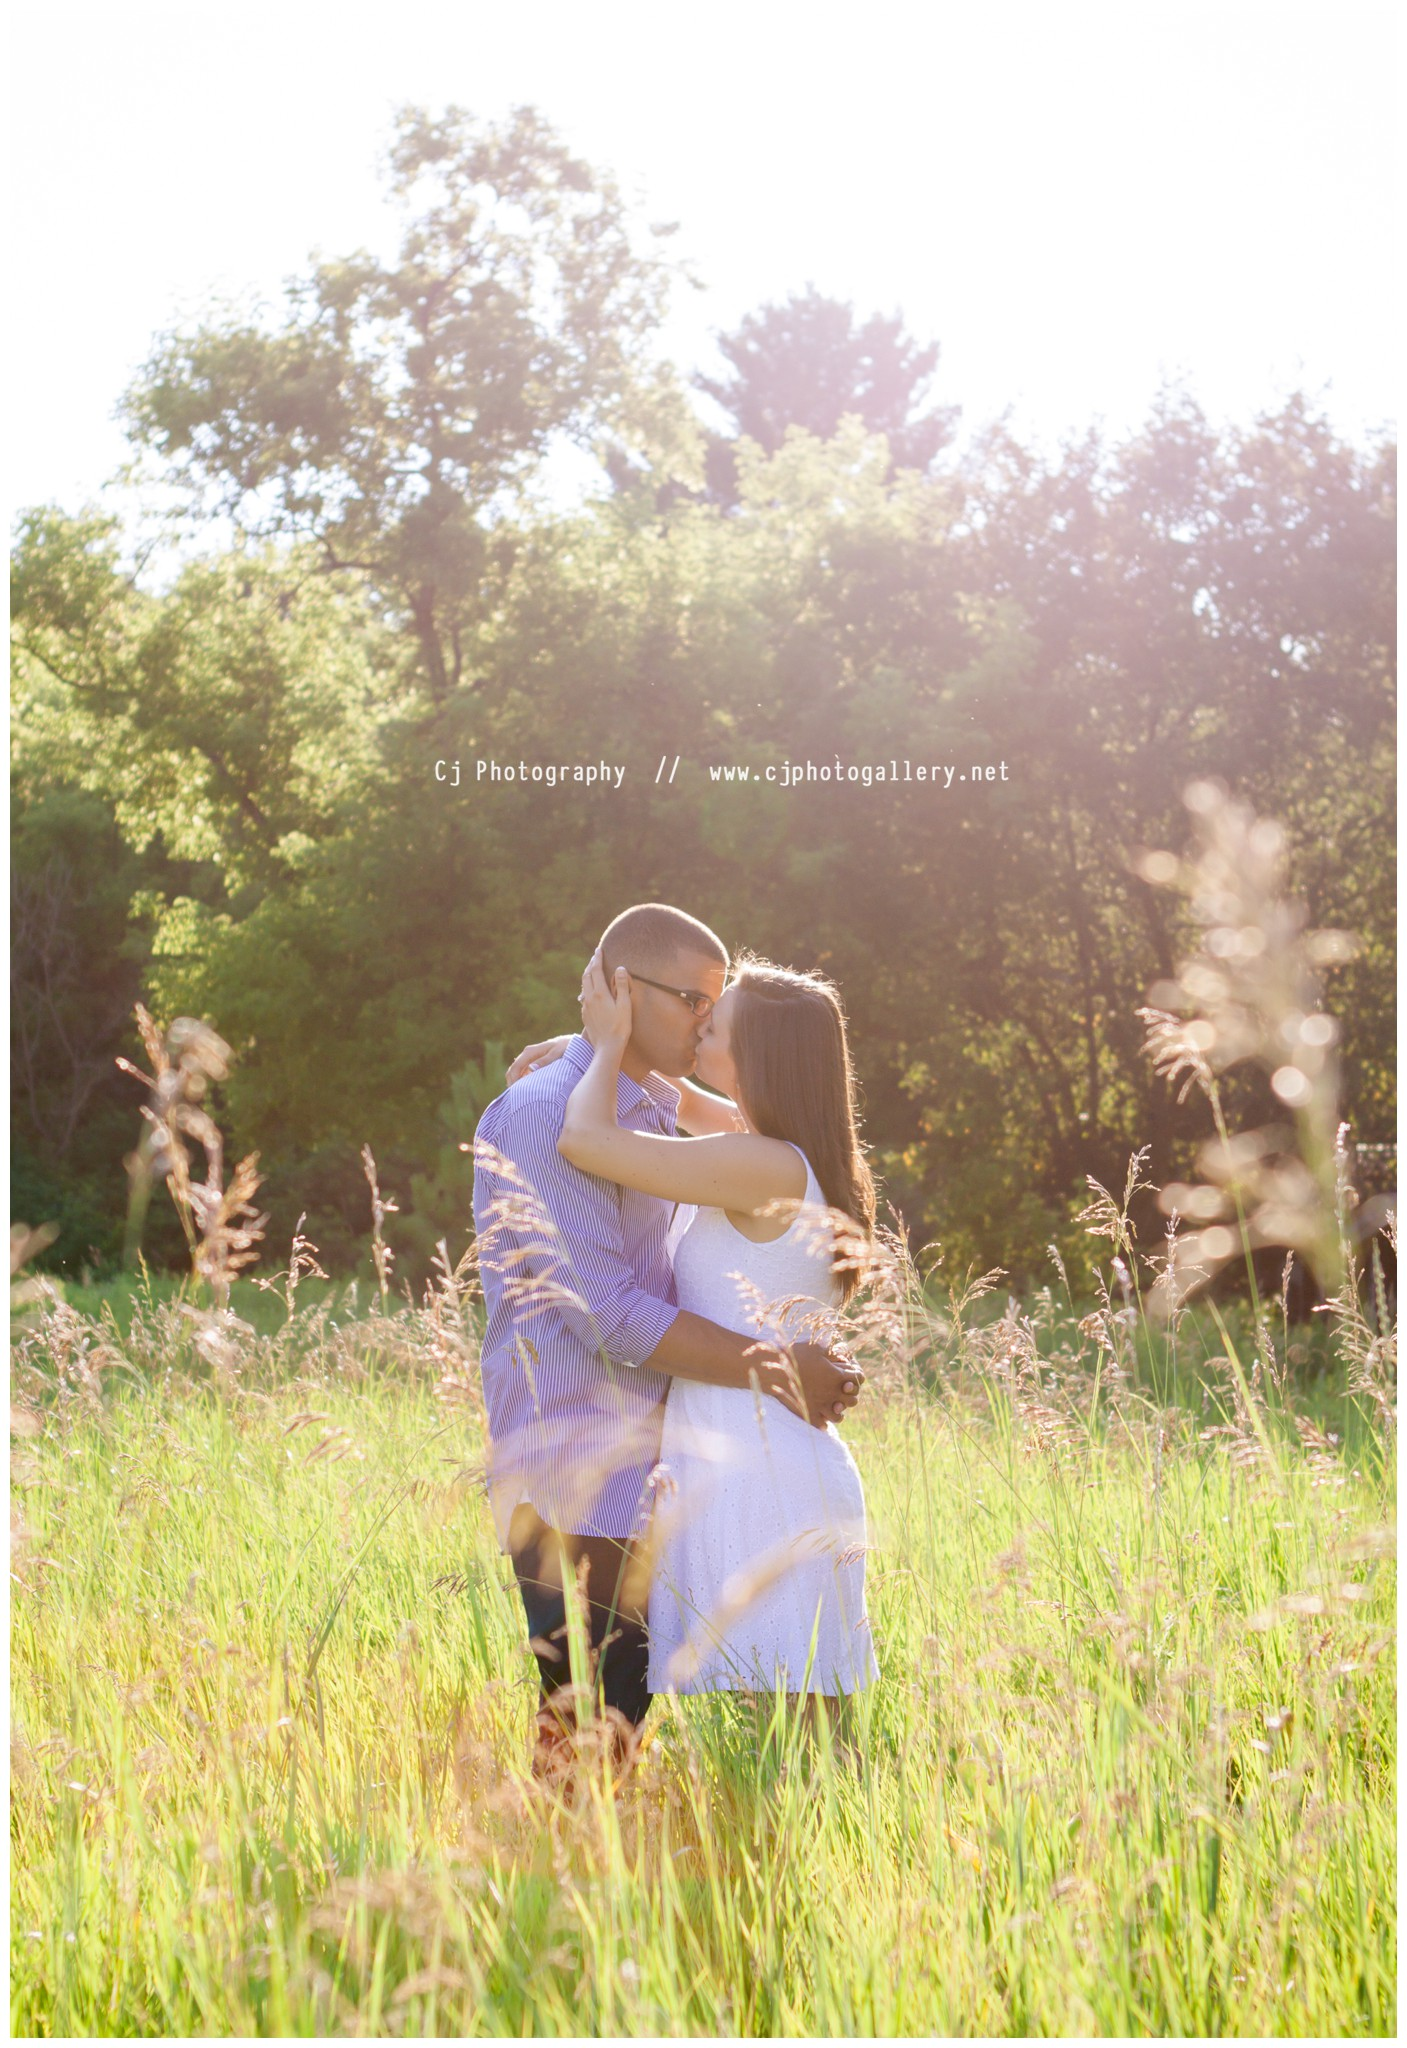 Stevens Point Wisconsin Engagement Photographers - Cj Photography